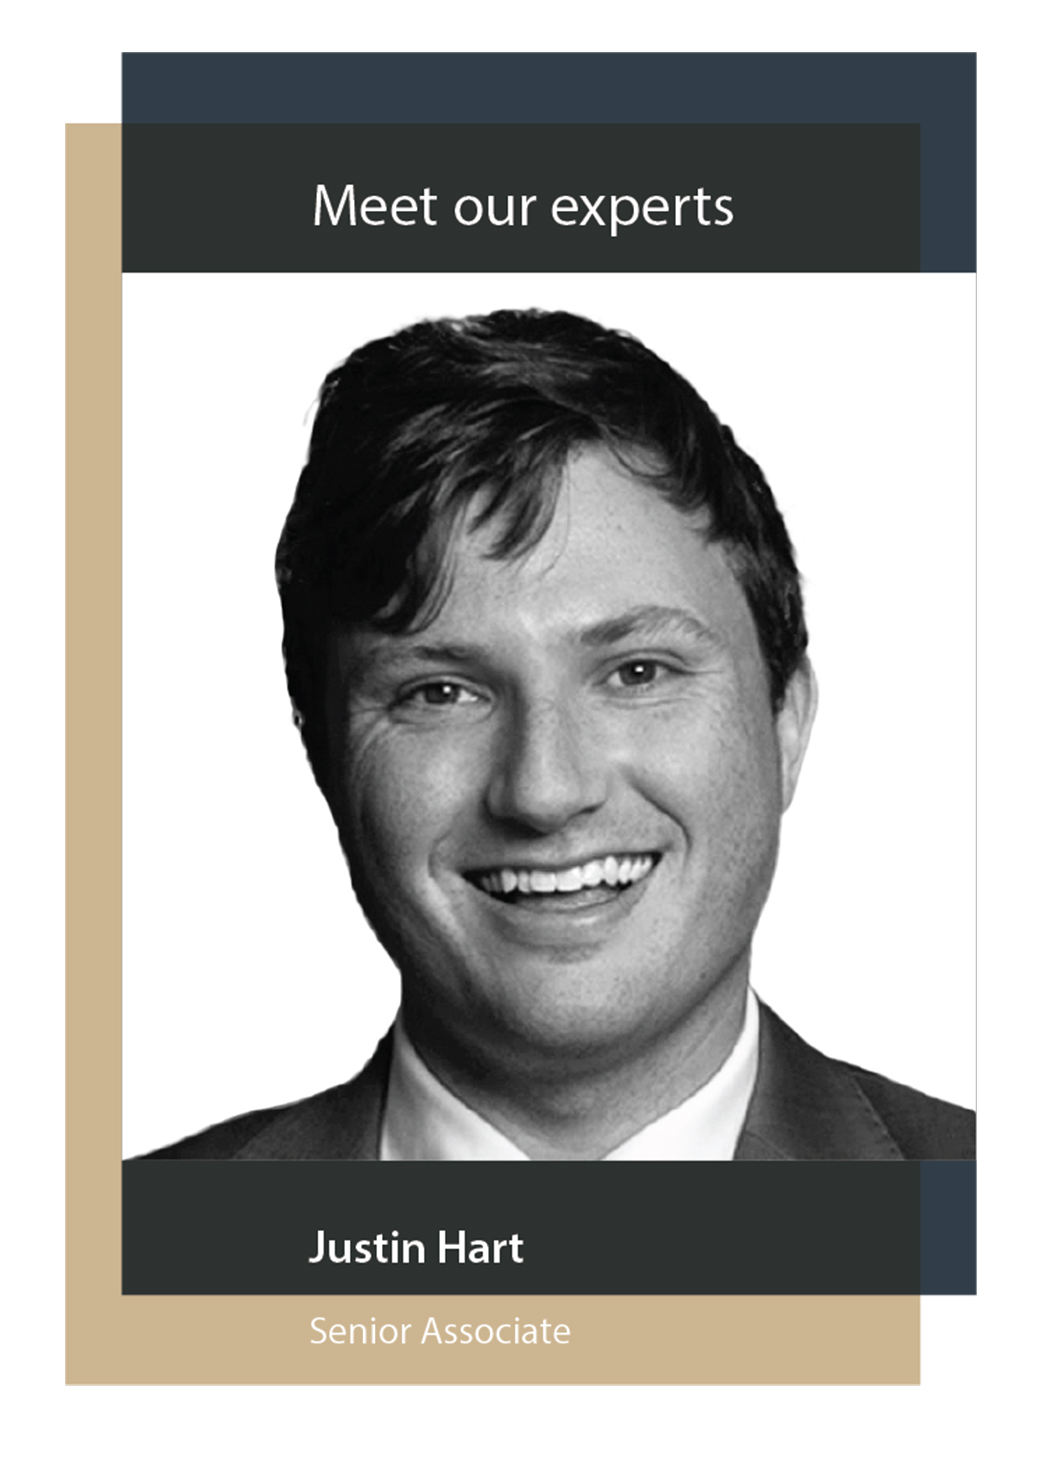 meet our experts-justin